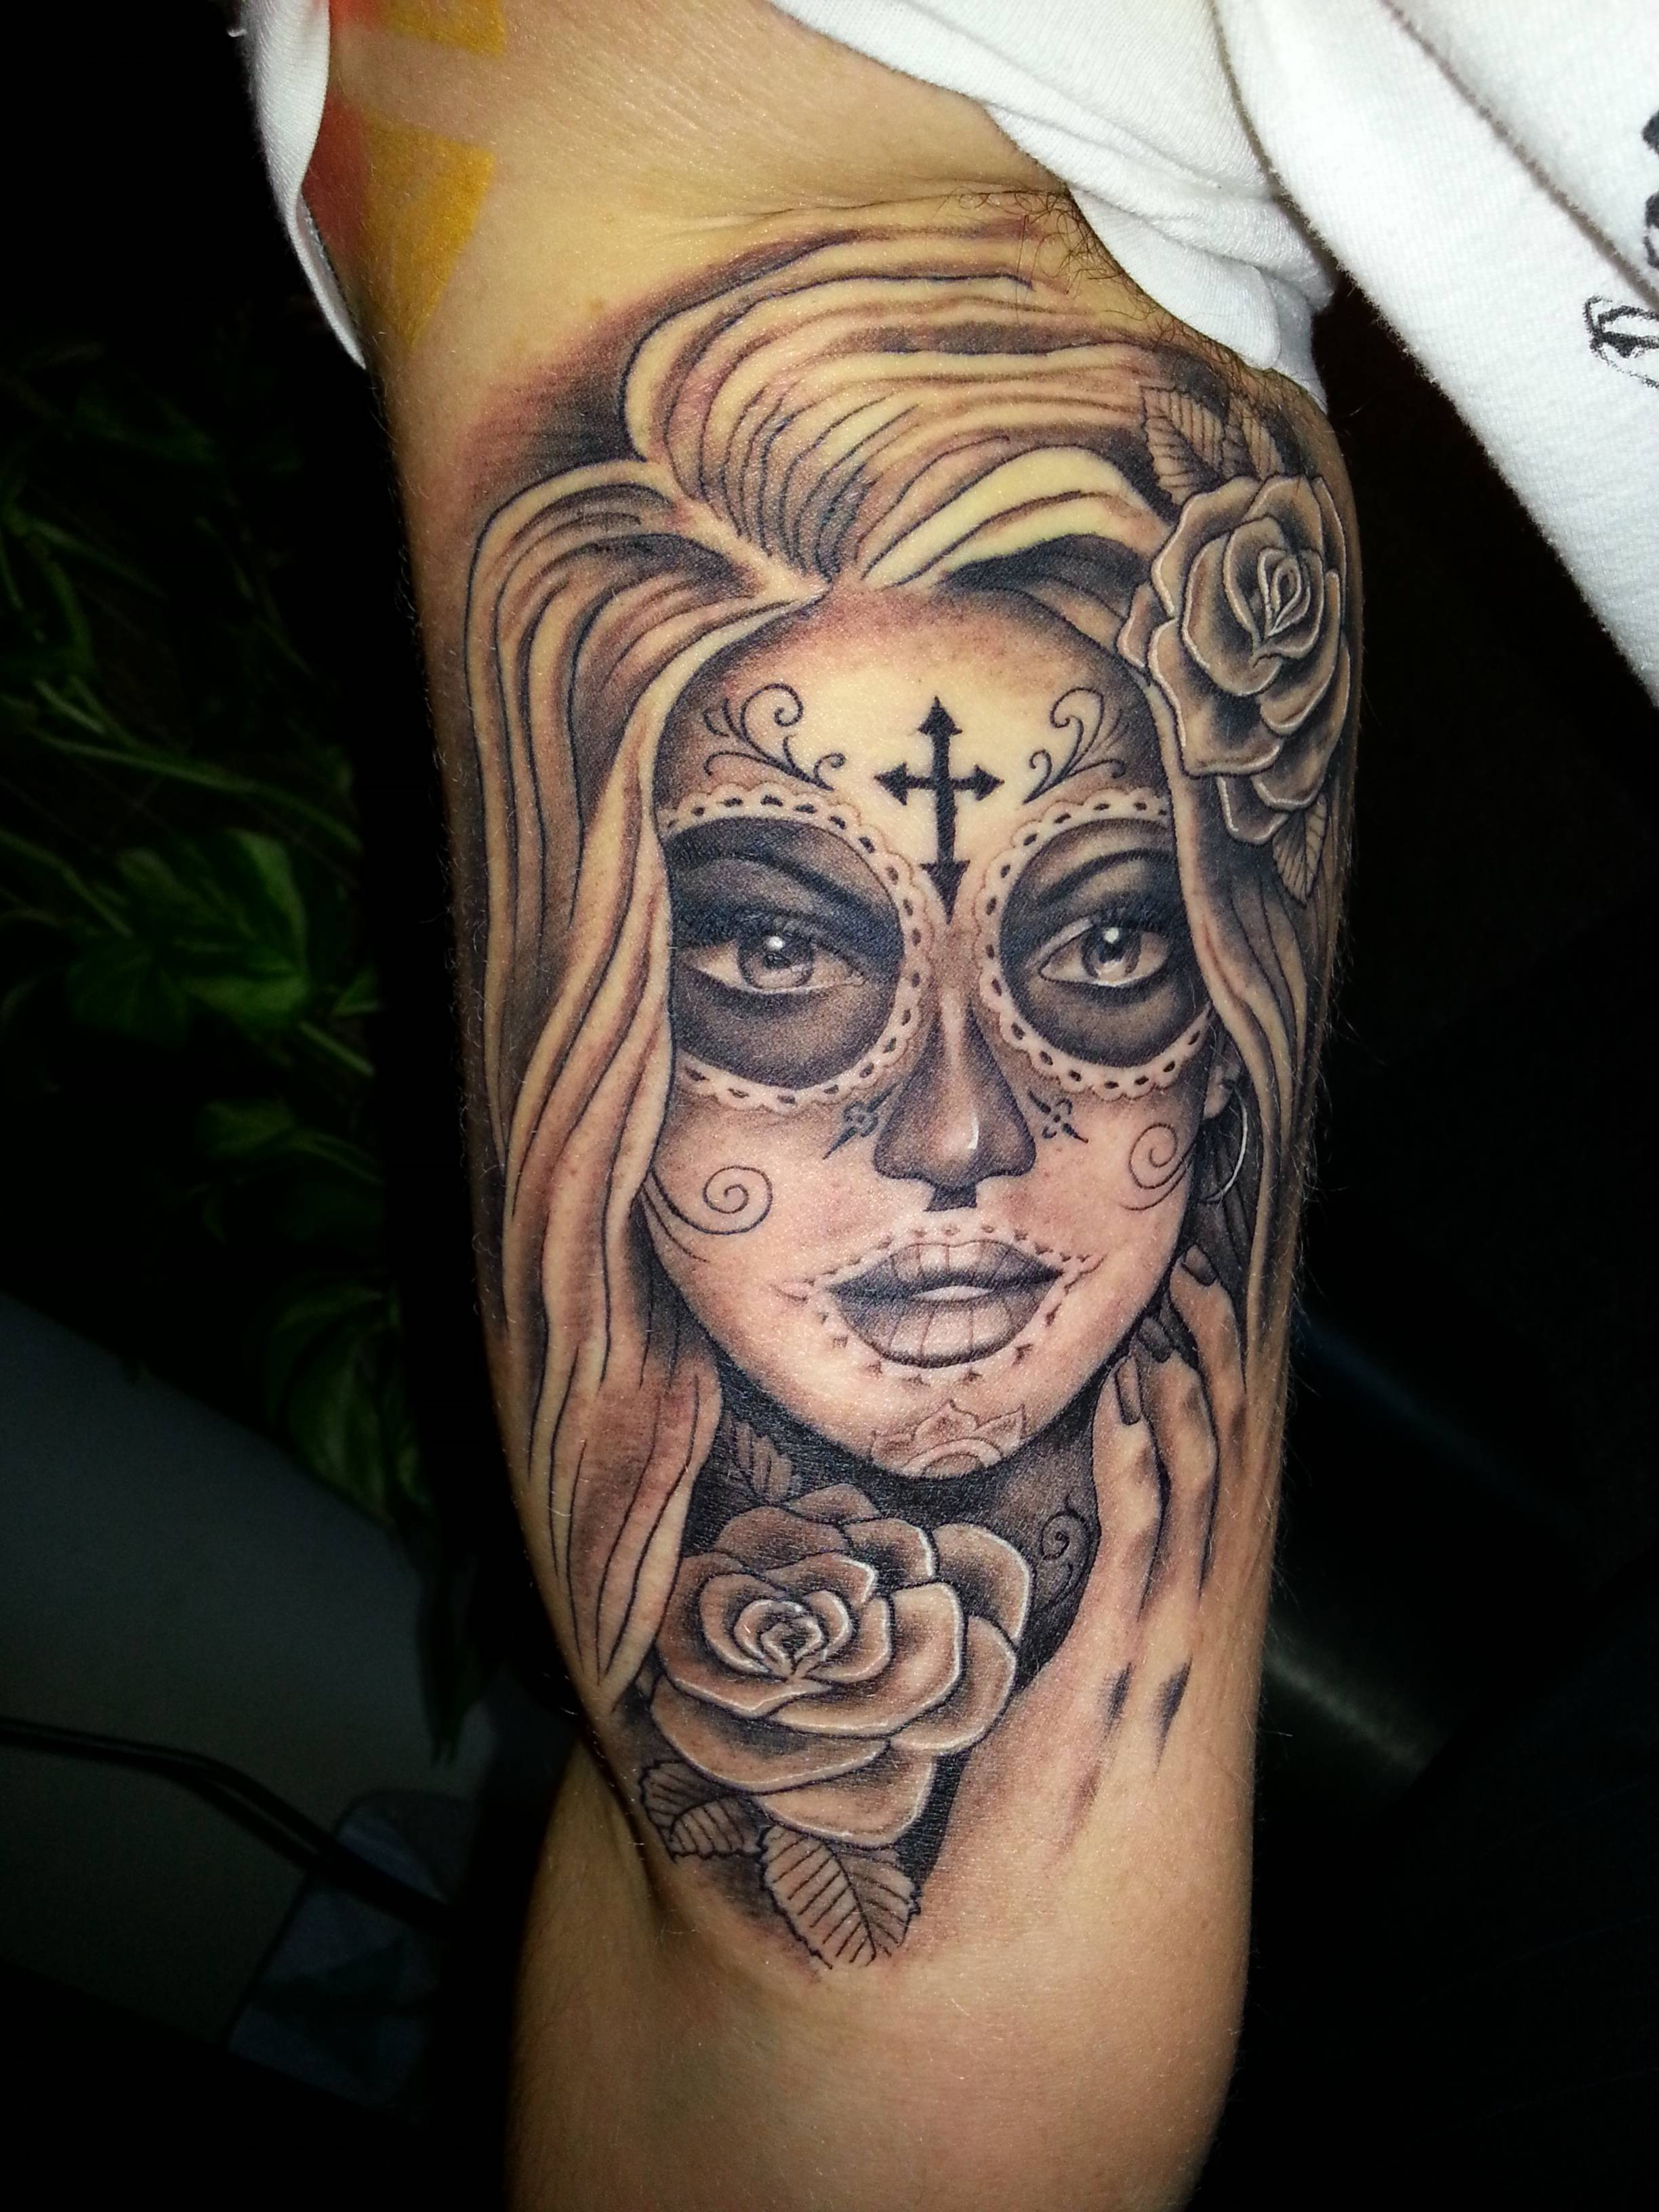 woman's death face inner bicep tattoo for men